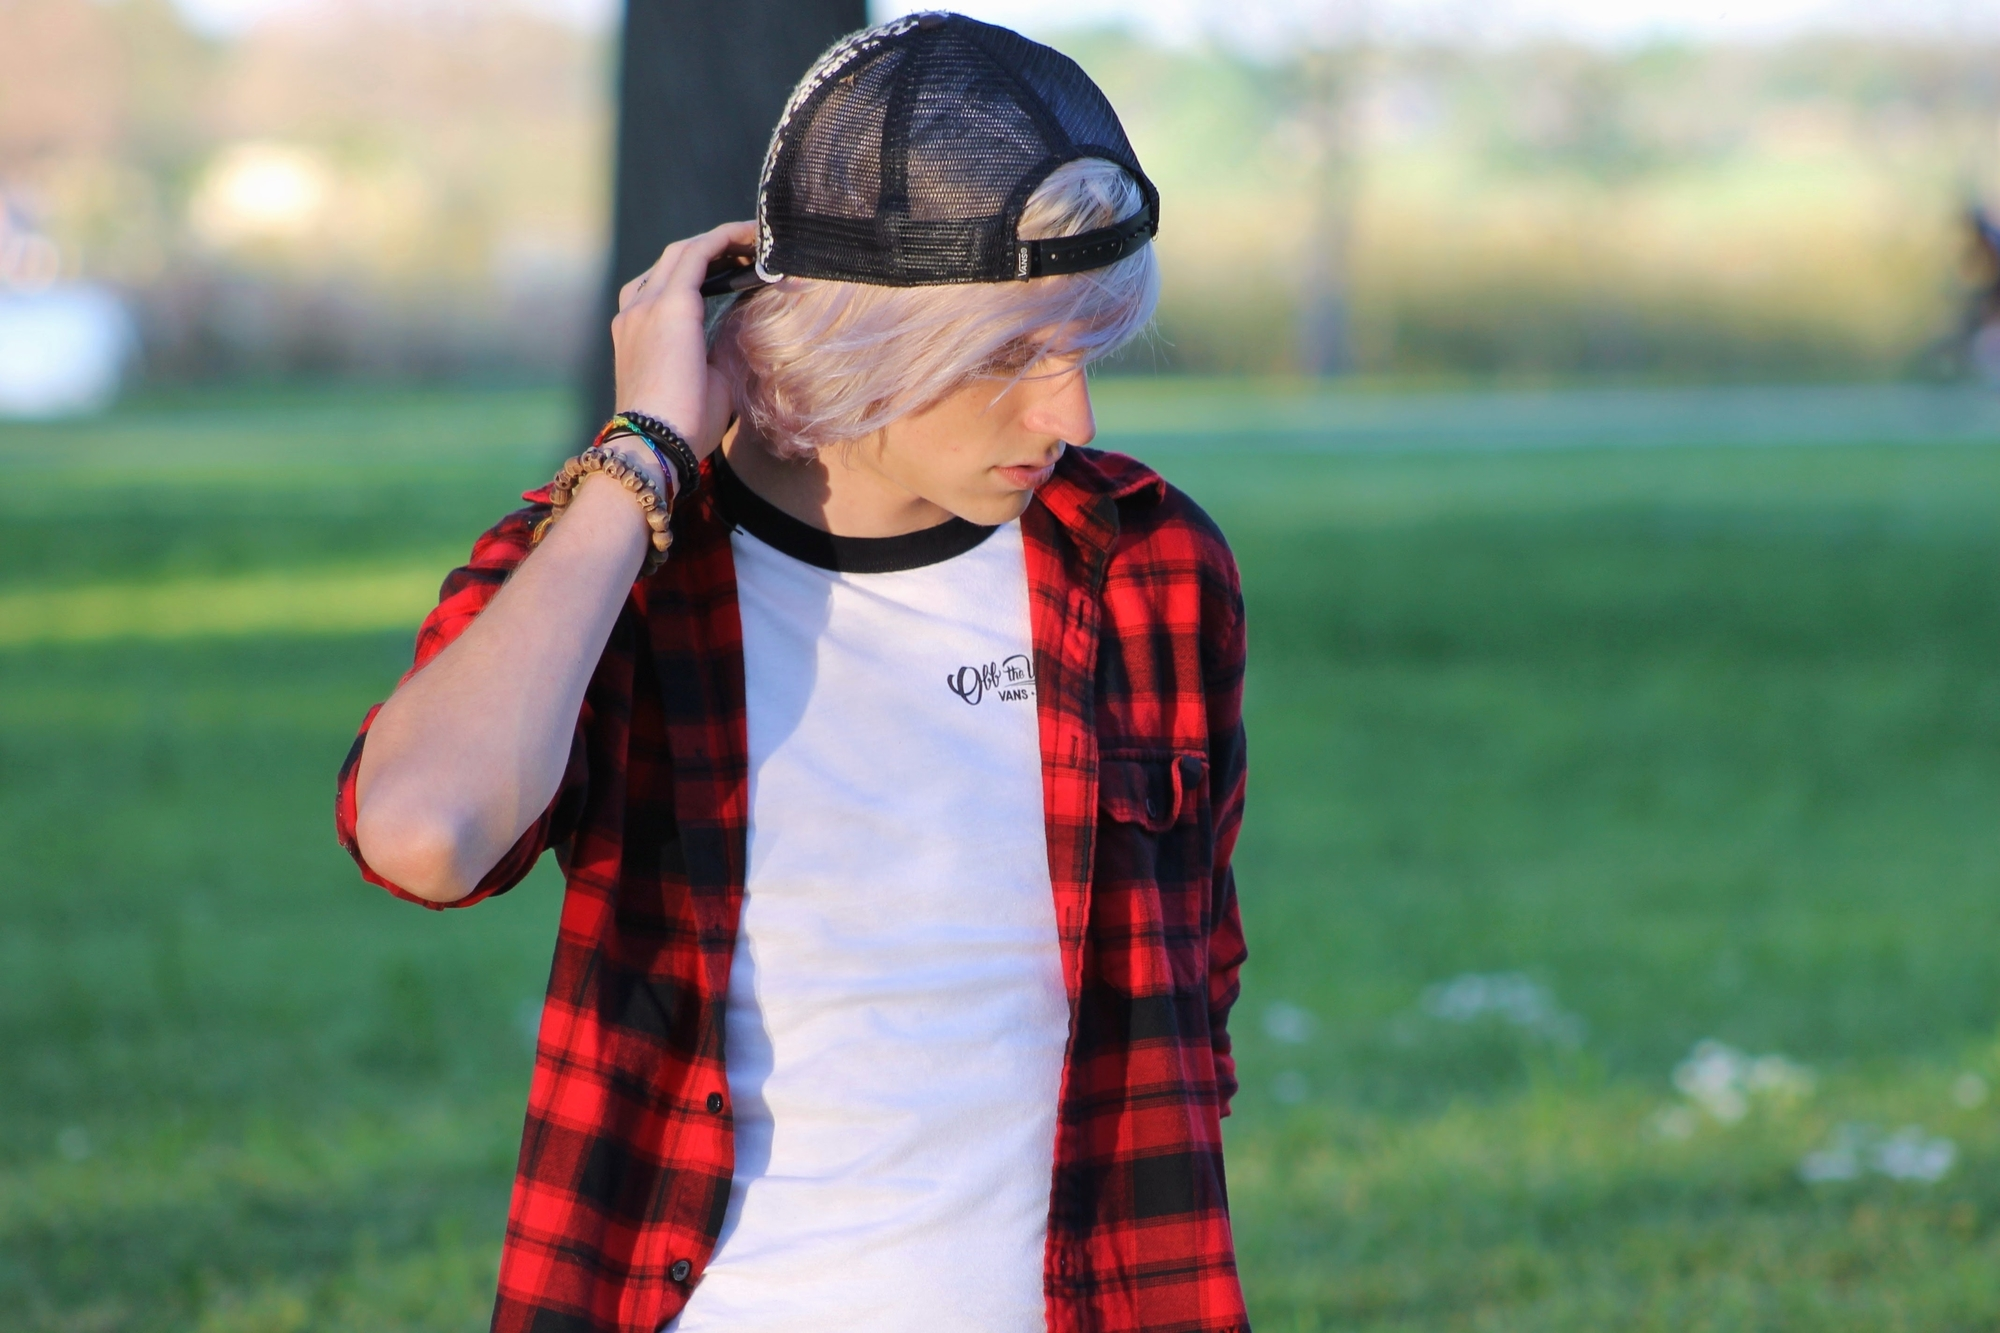 influencer in red plaid shirt touching cap lightly